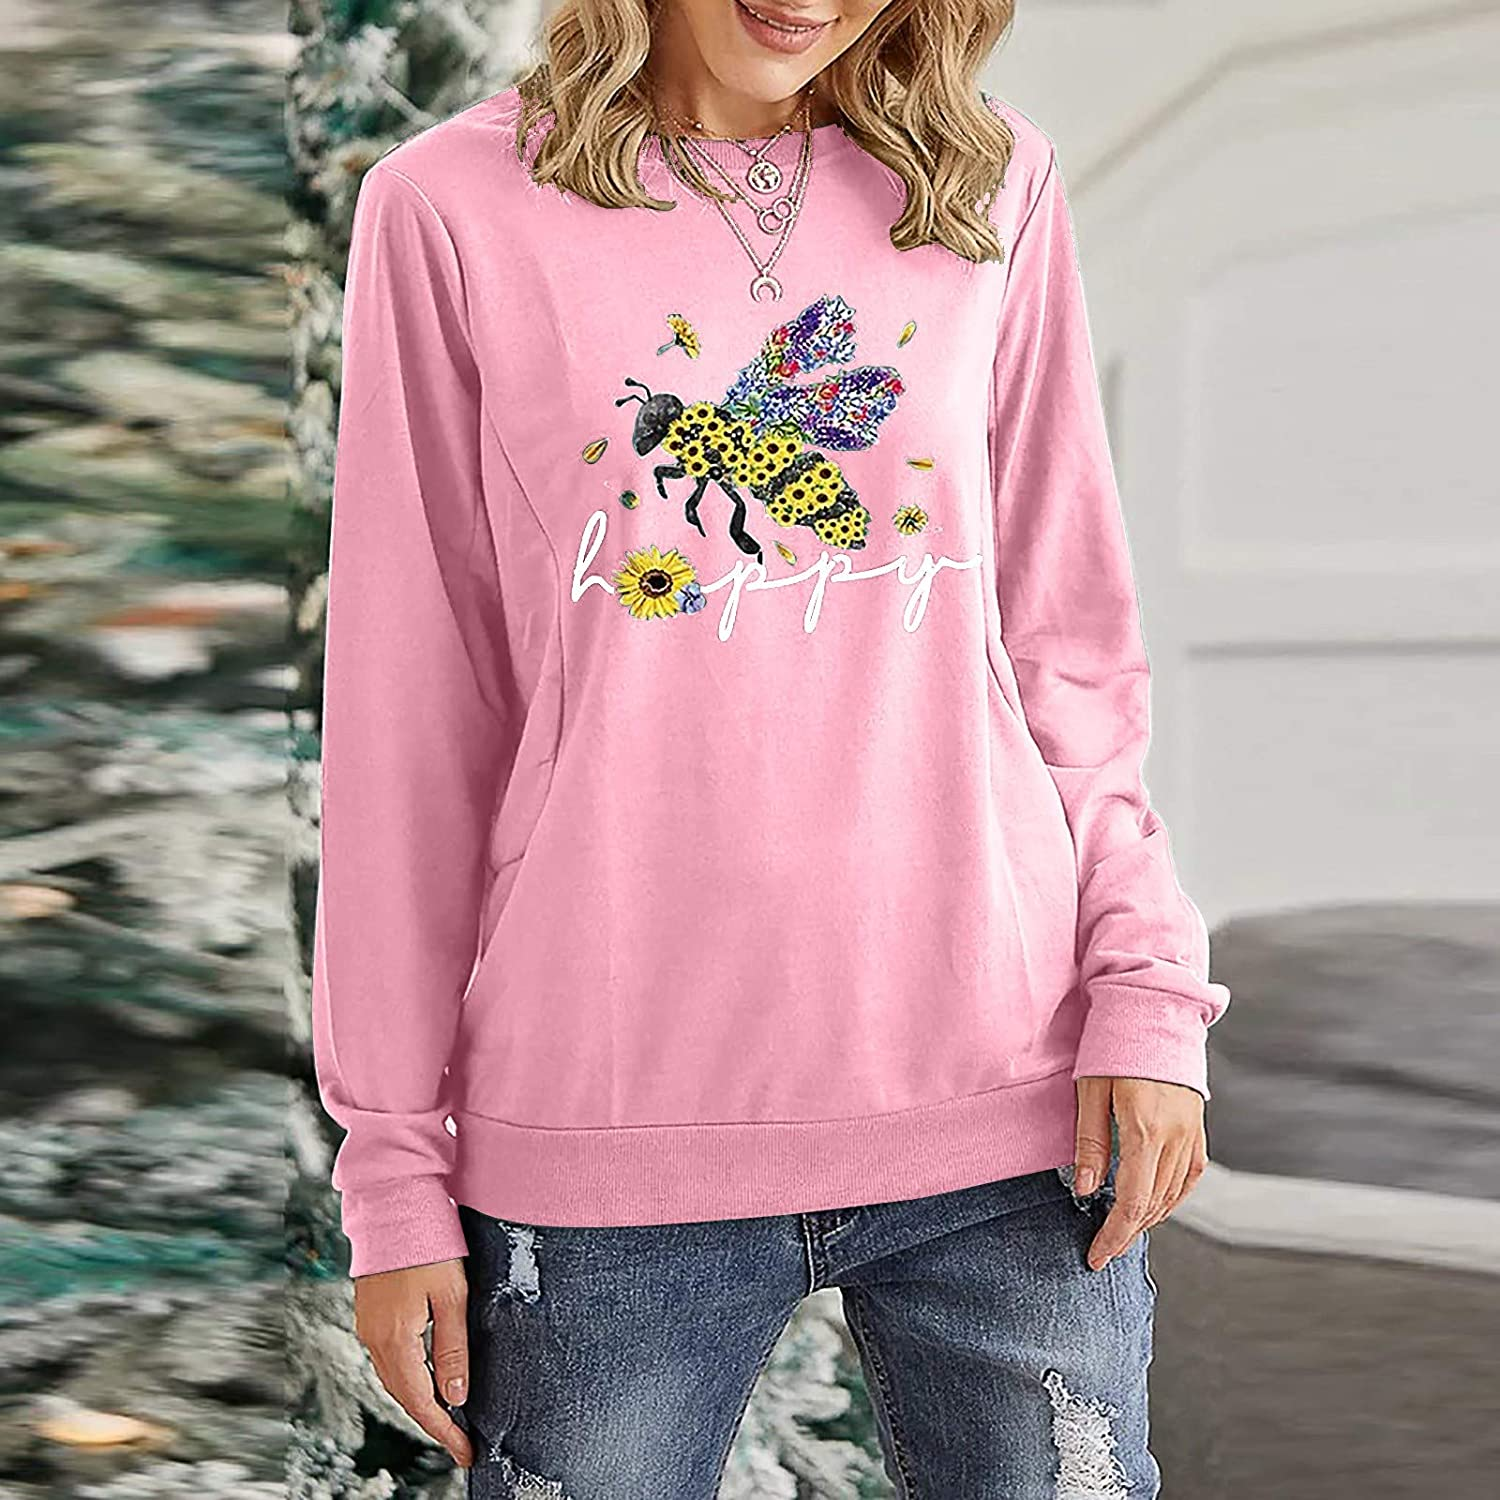 NECHOLOGY Women Loose Butterfly O-Neck Sweatshirts Long Sleeve Pullover Sweater Casual Shirts Sweatshirt Jumper Blouse Tops